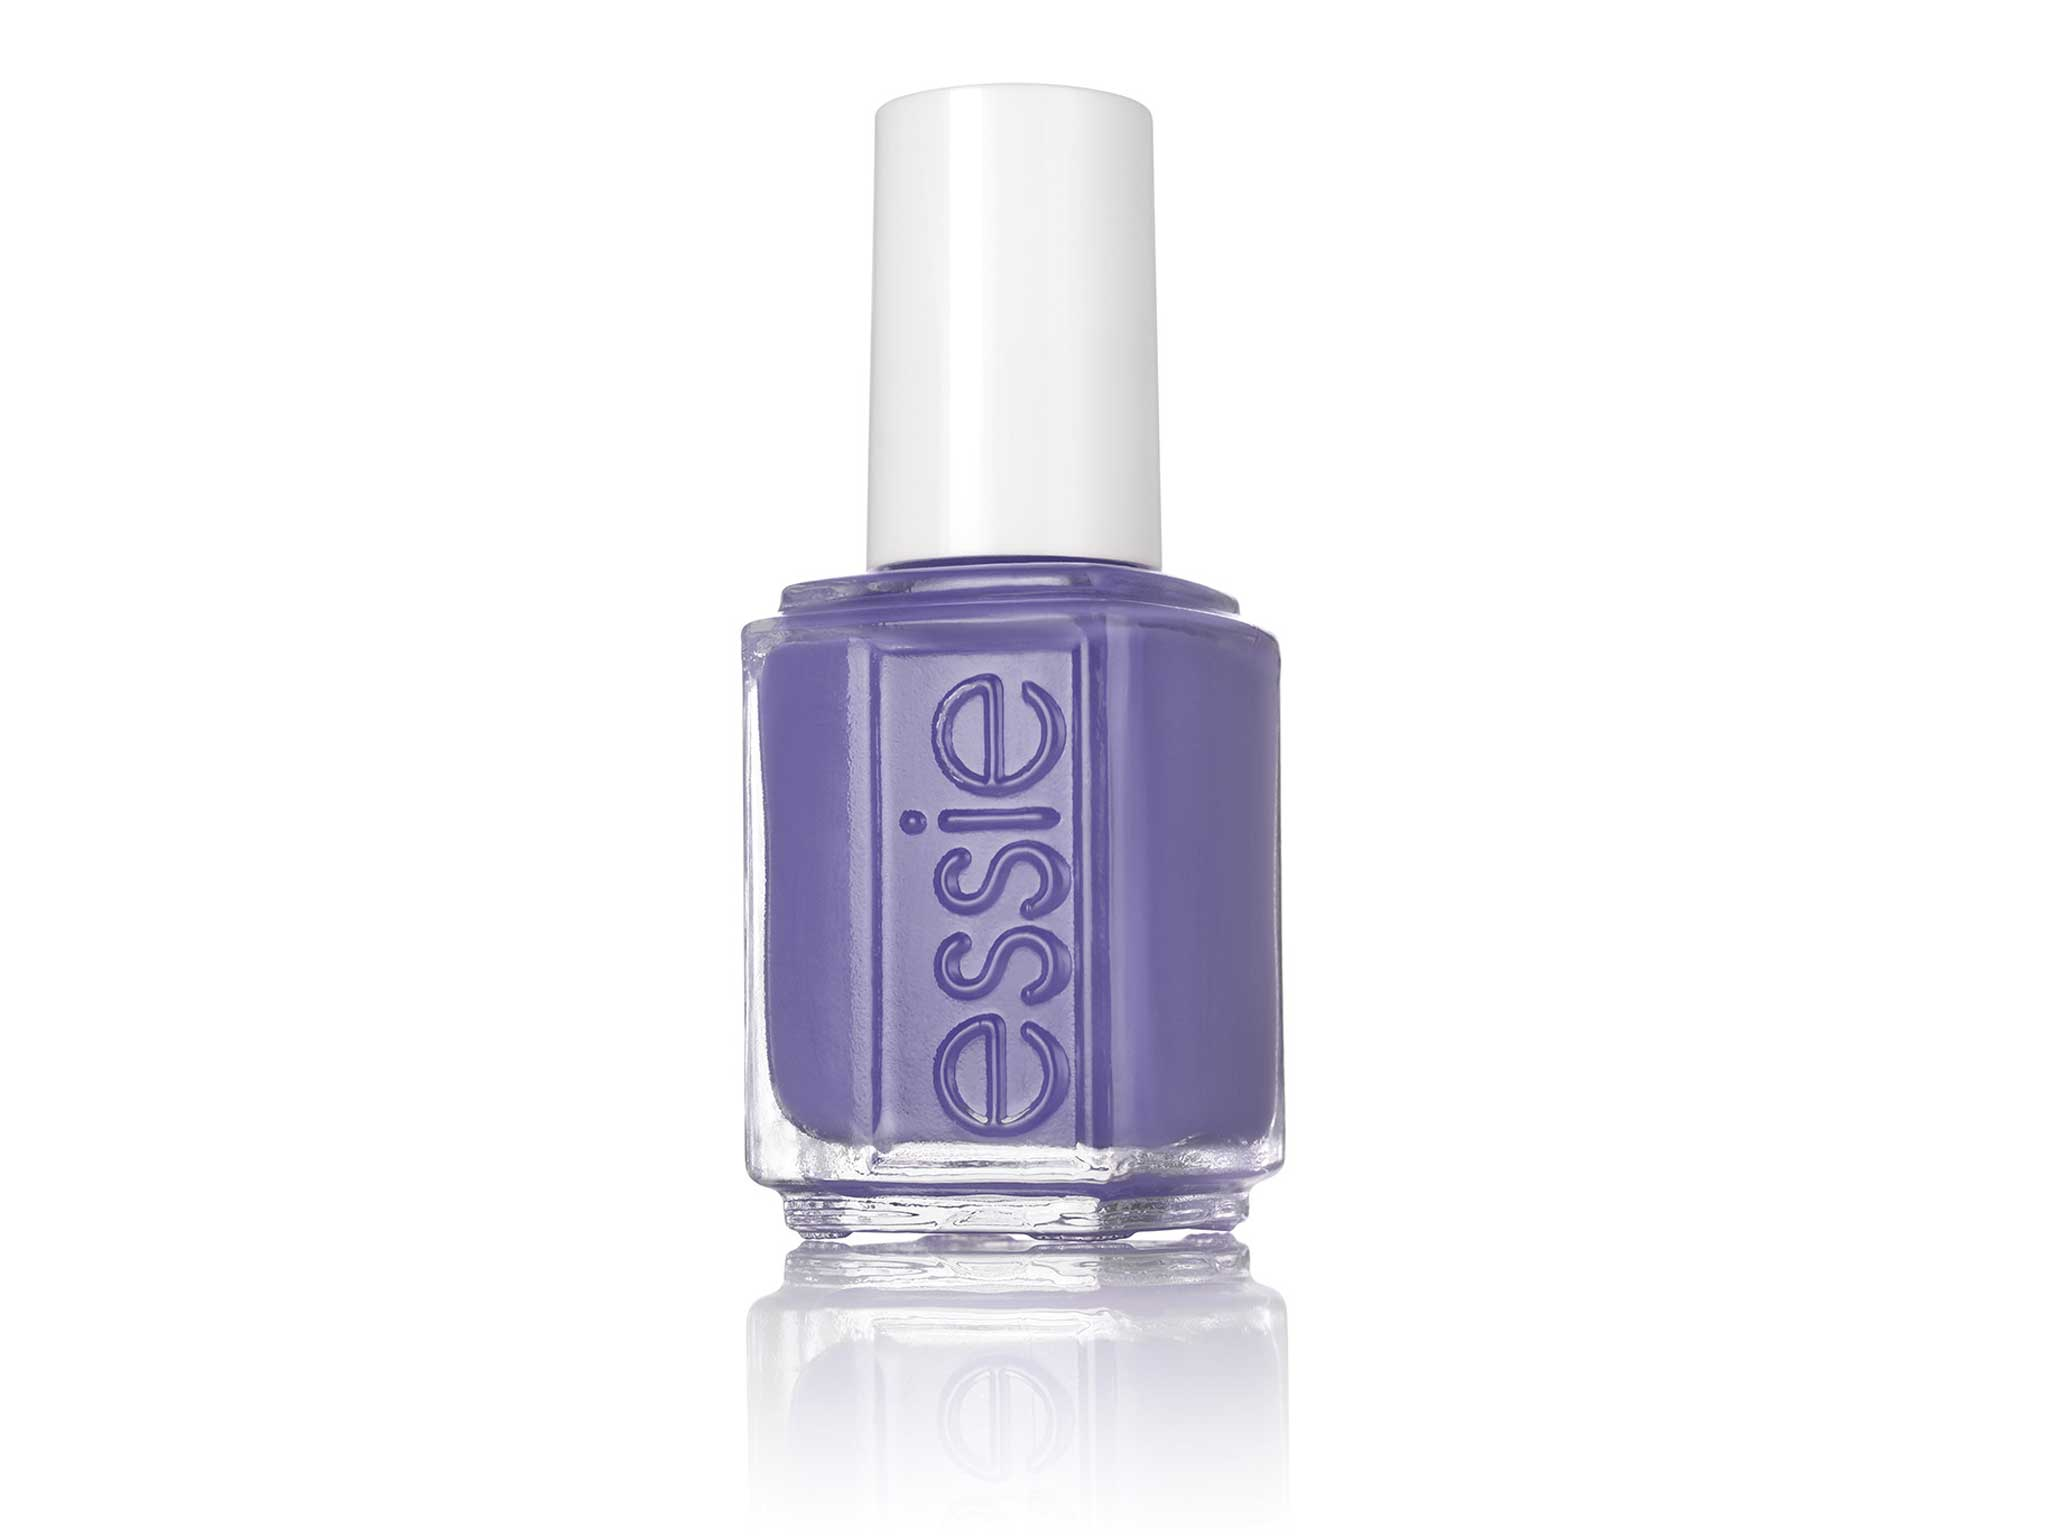 9 best nail polishes for spring/summer | The Independent